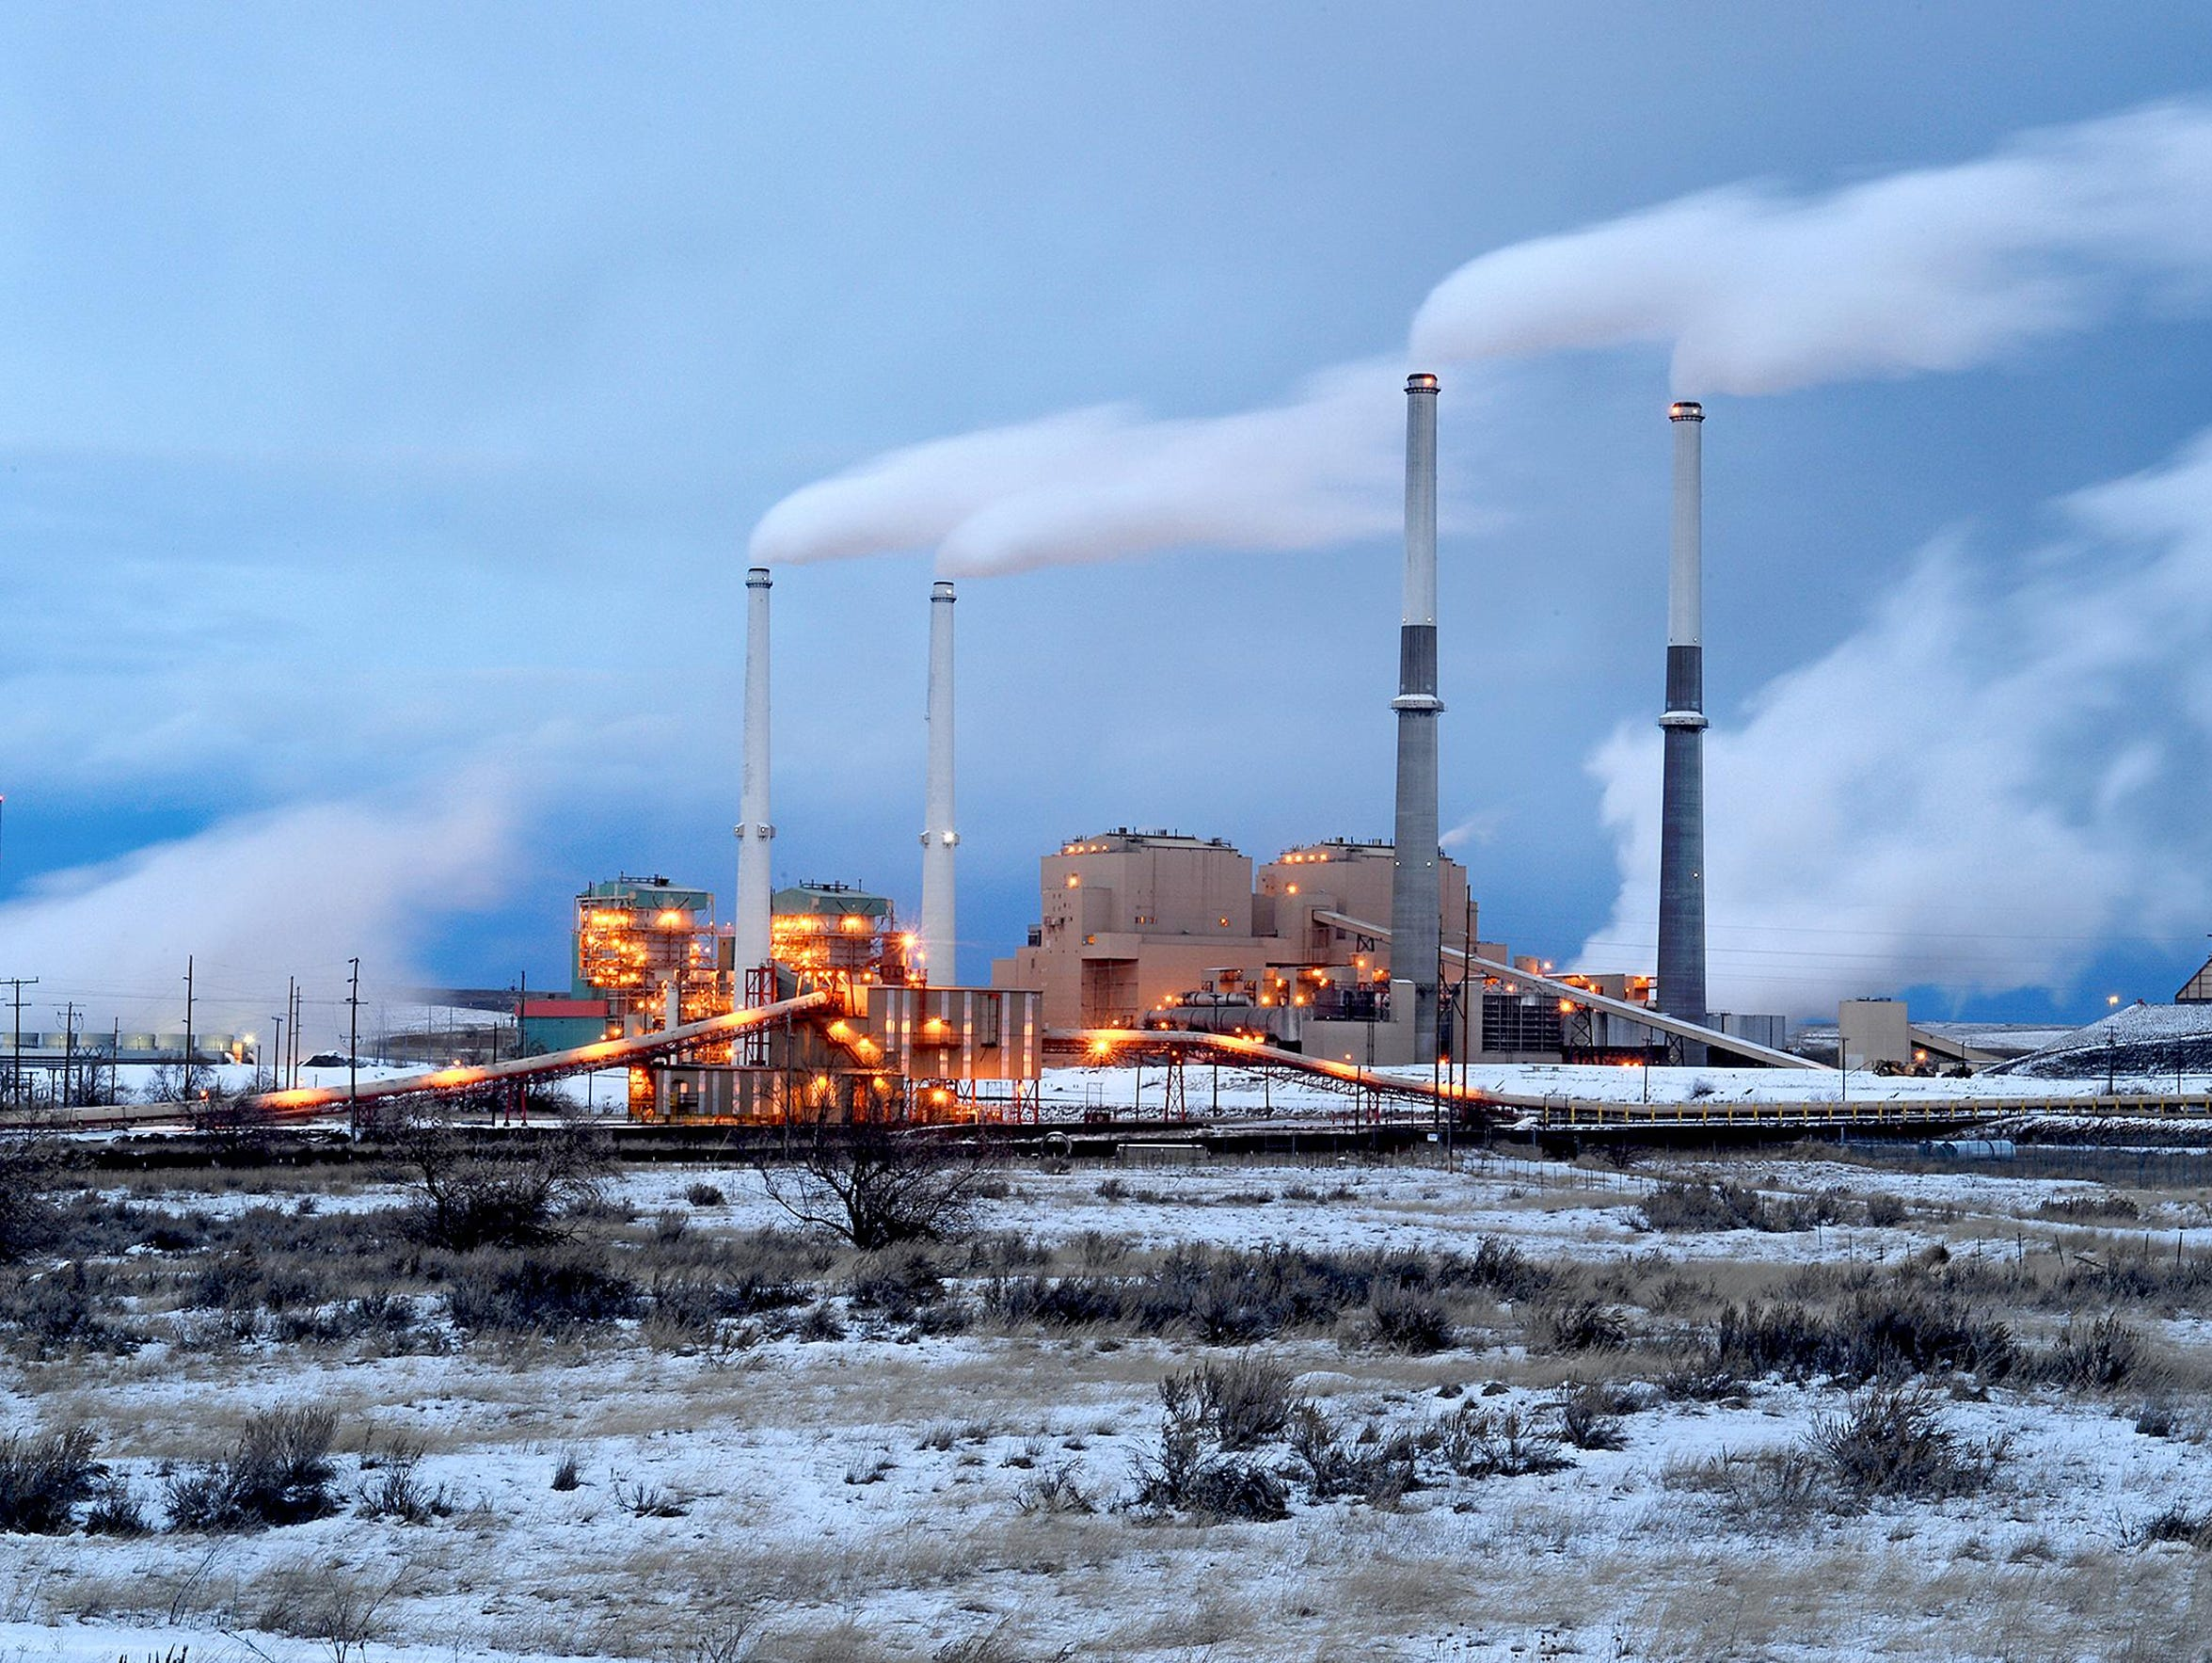 The coal-fired power plant in Colstrip on Feb. 4